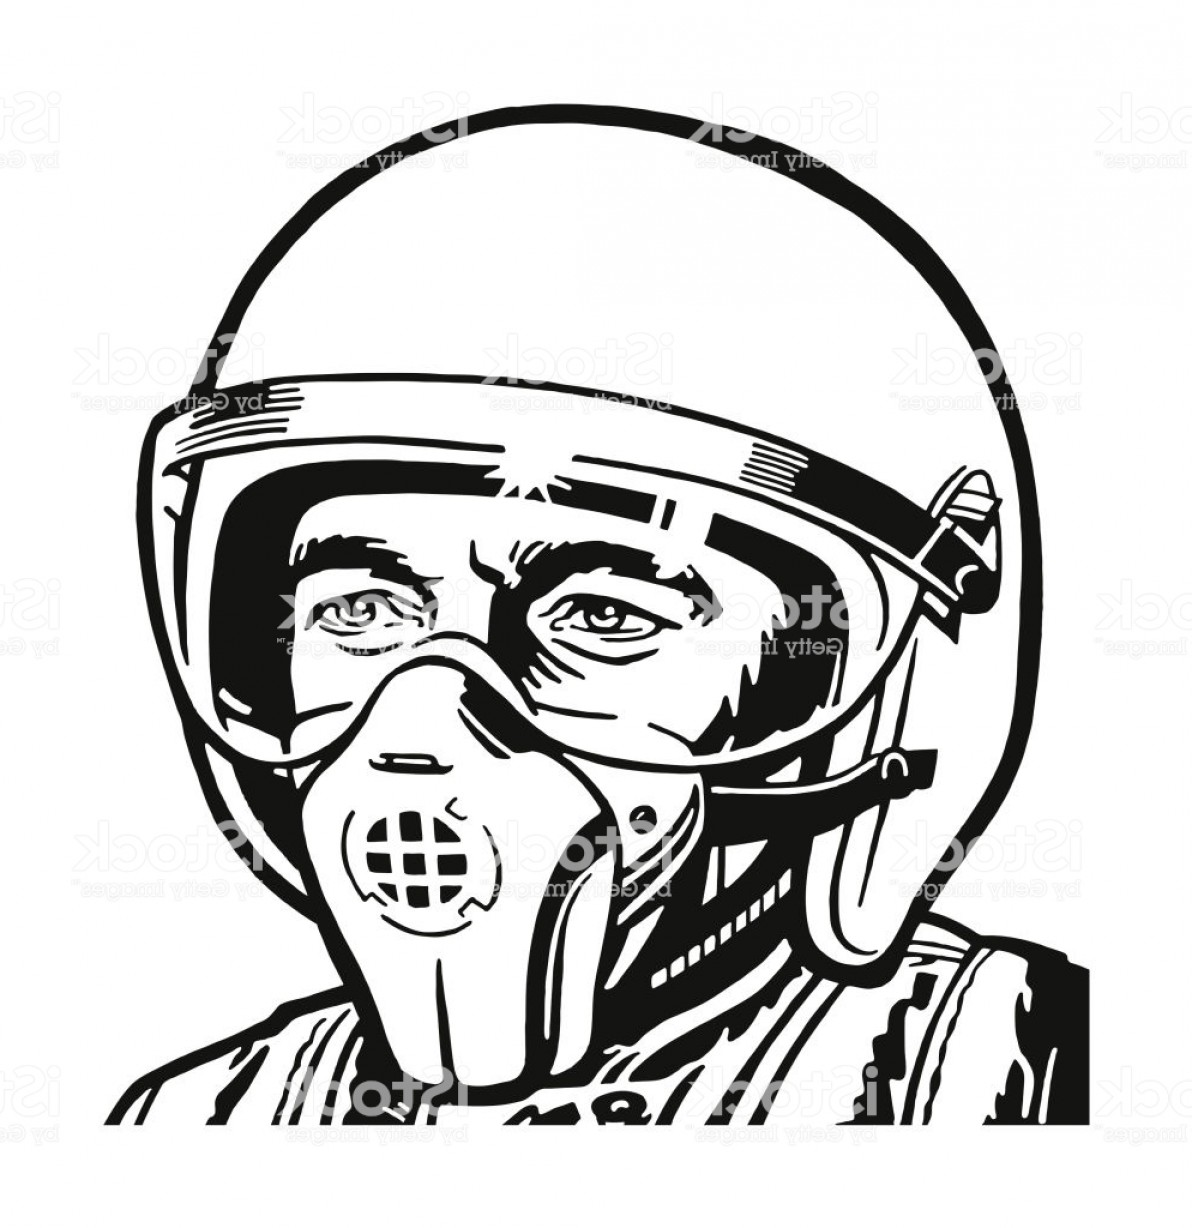 Fighter Helmet Vectors: Jet Pilot Wearing A Helmet And Mask Gm